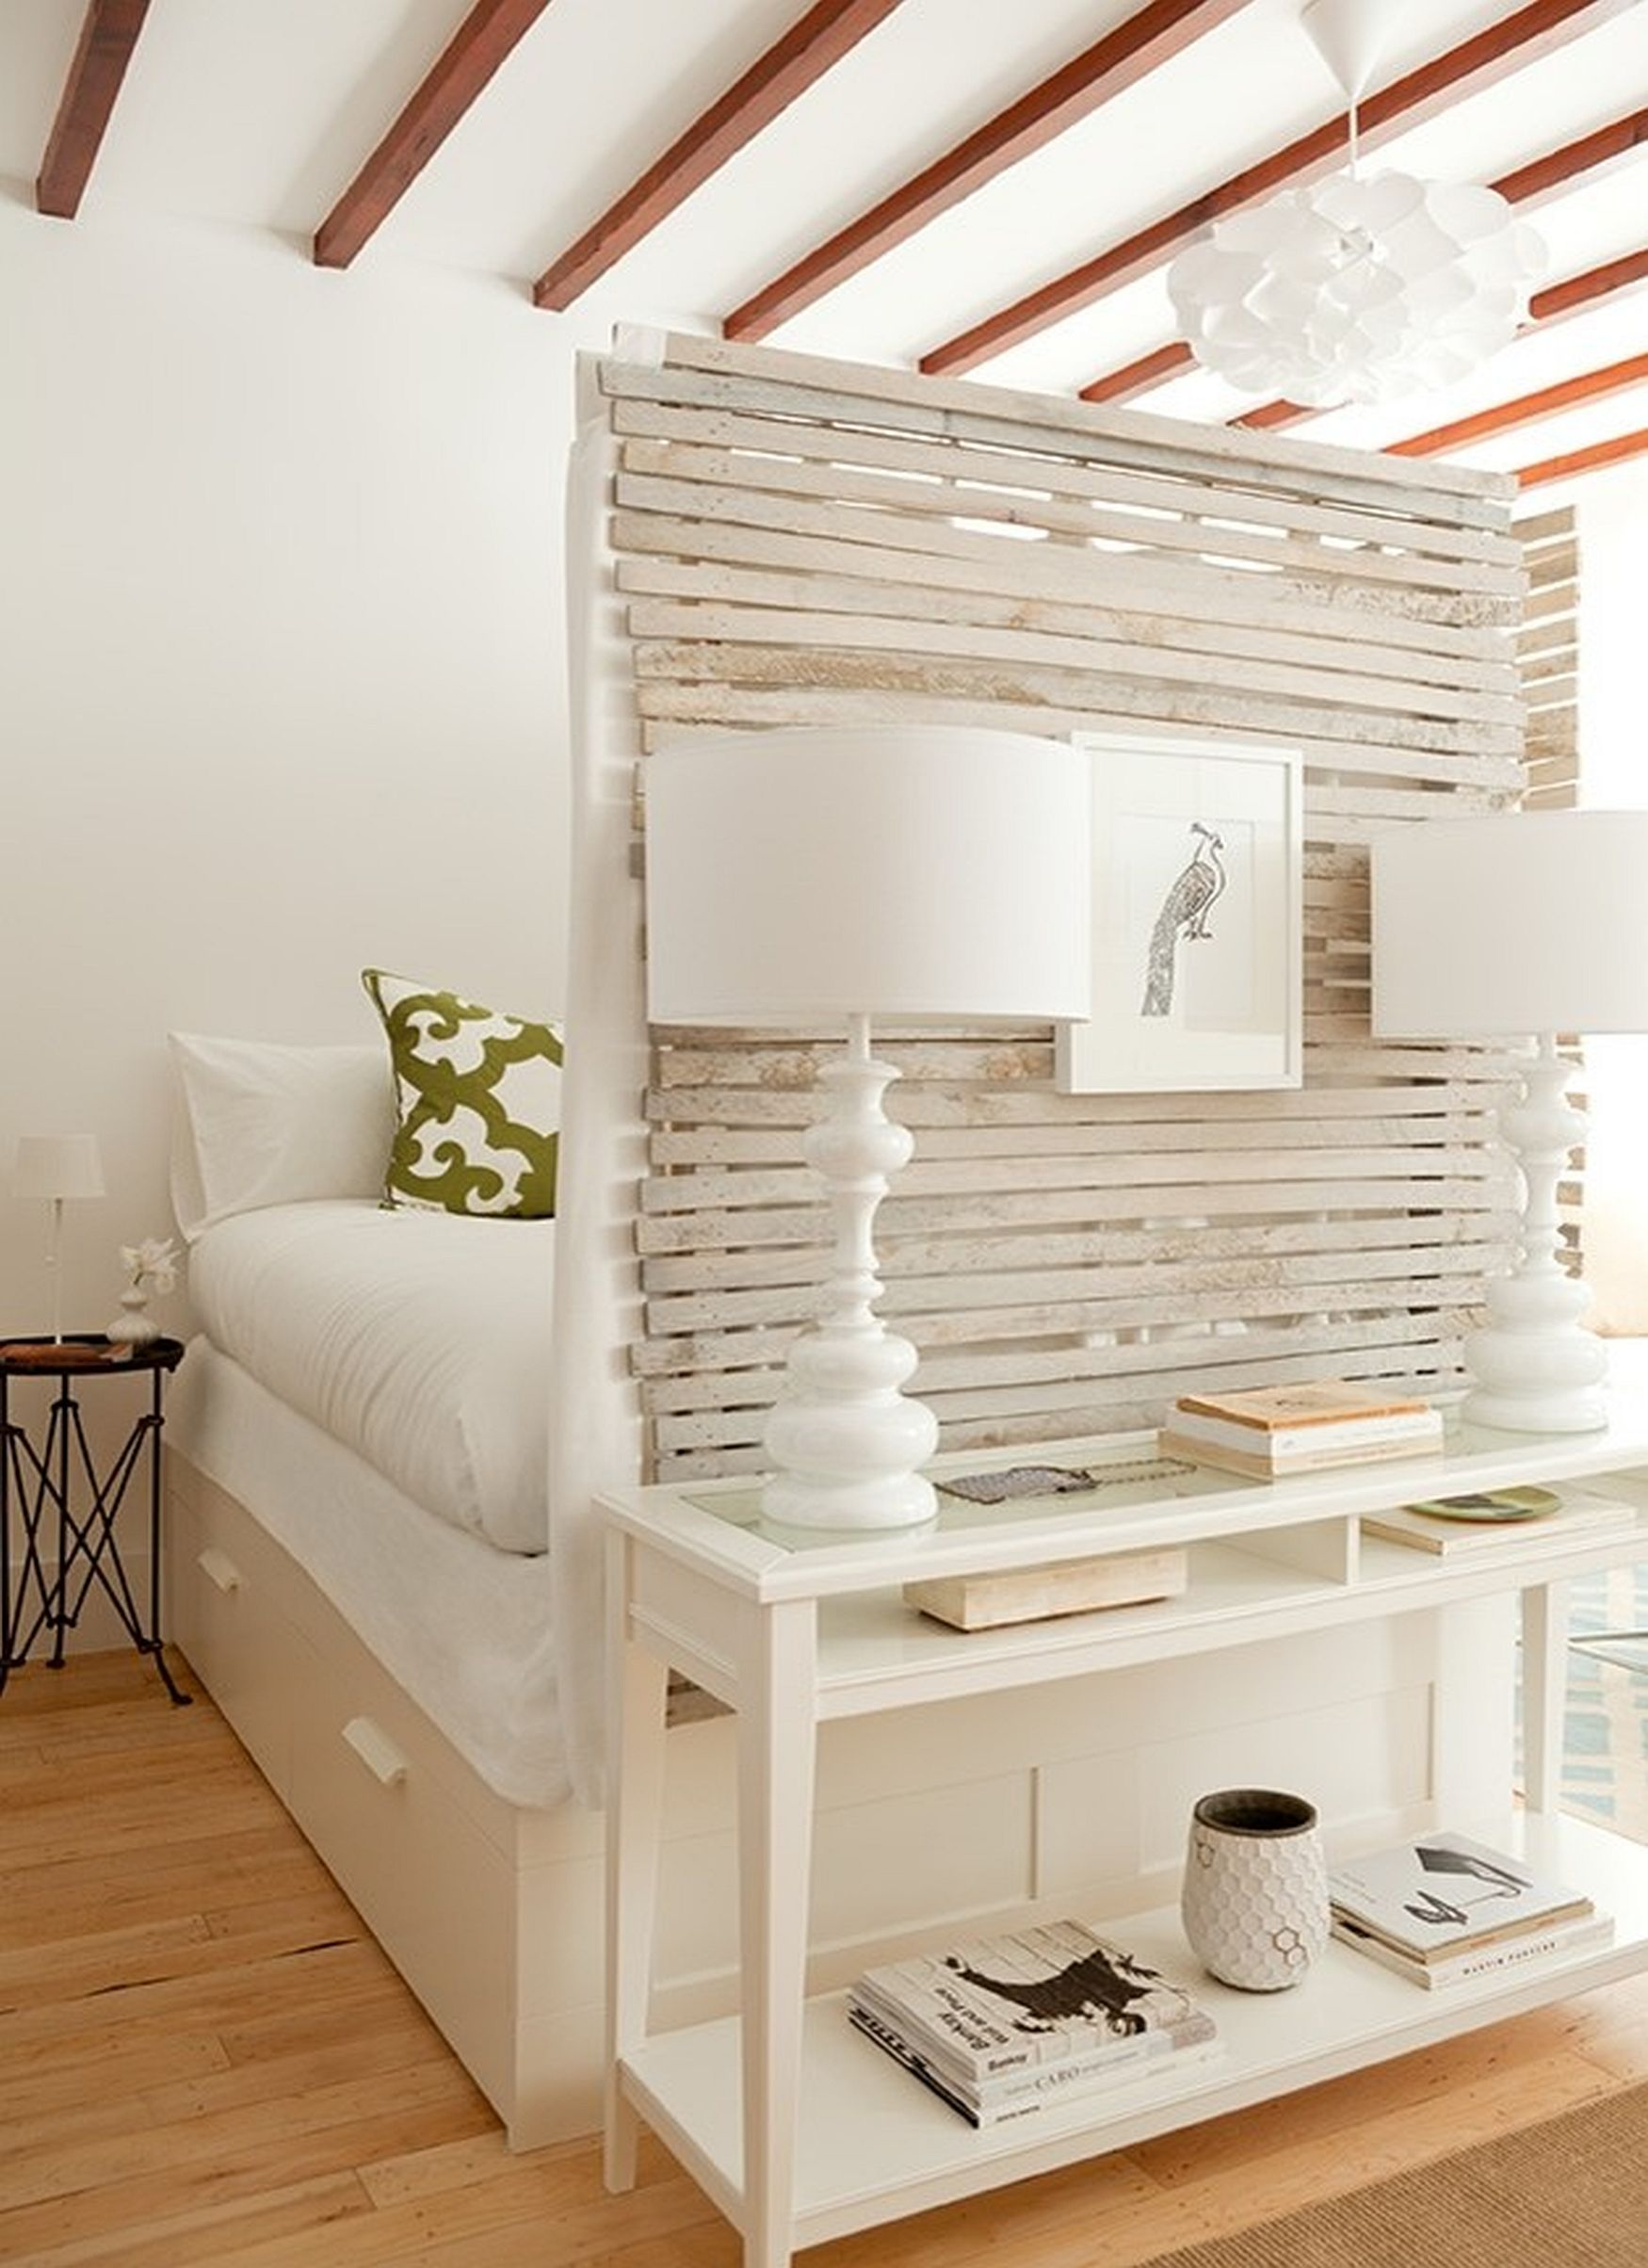 15 Creative Room Dividers For The Space-Savvy And Trendy